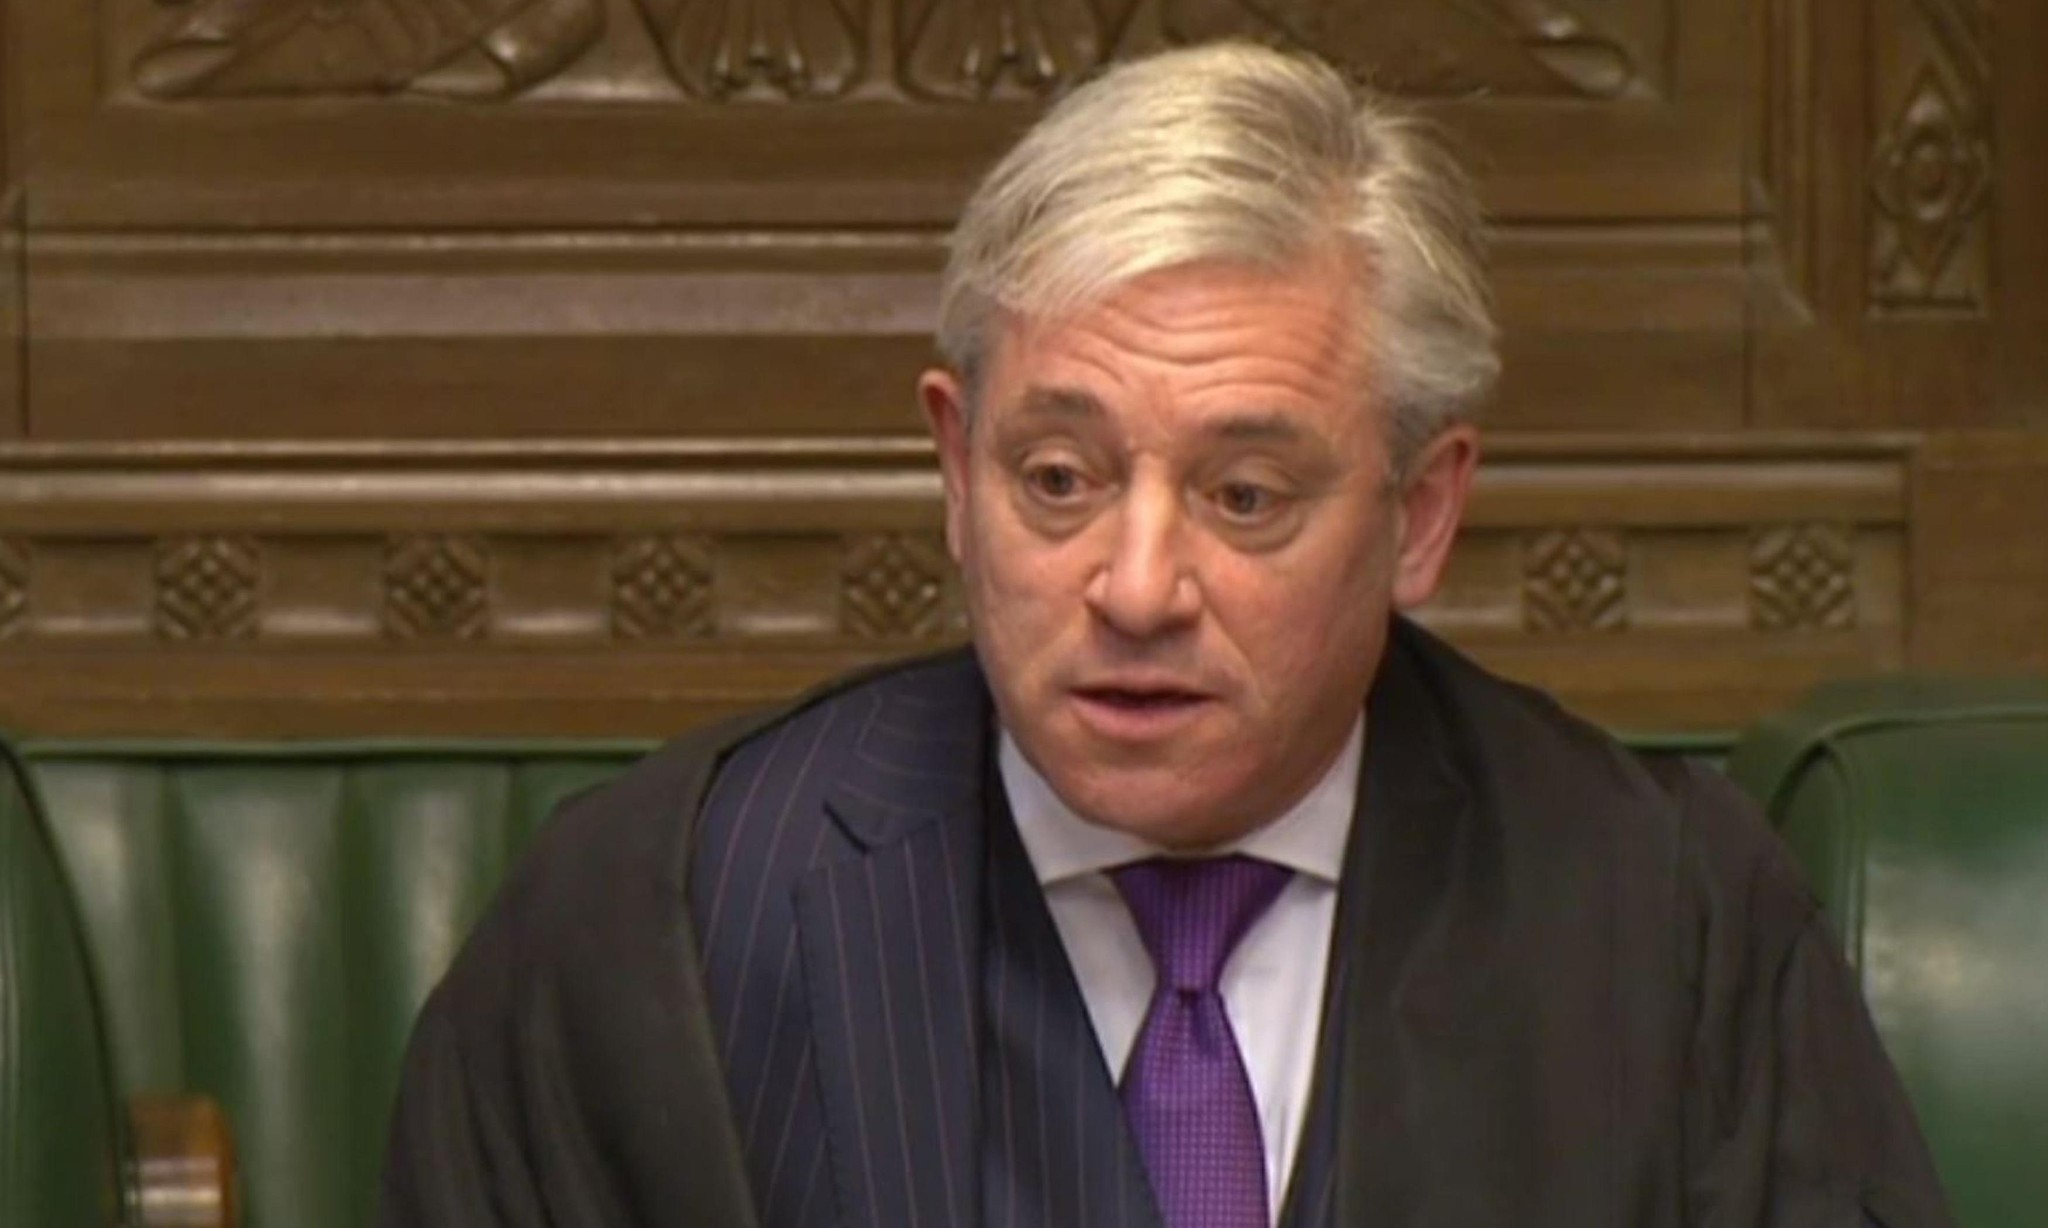 Donald Trump should not be allowed to speak in Westminster Hall, says Speaker